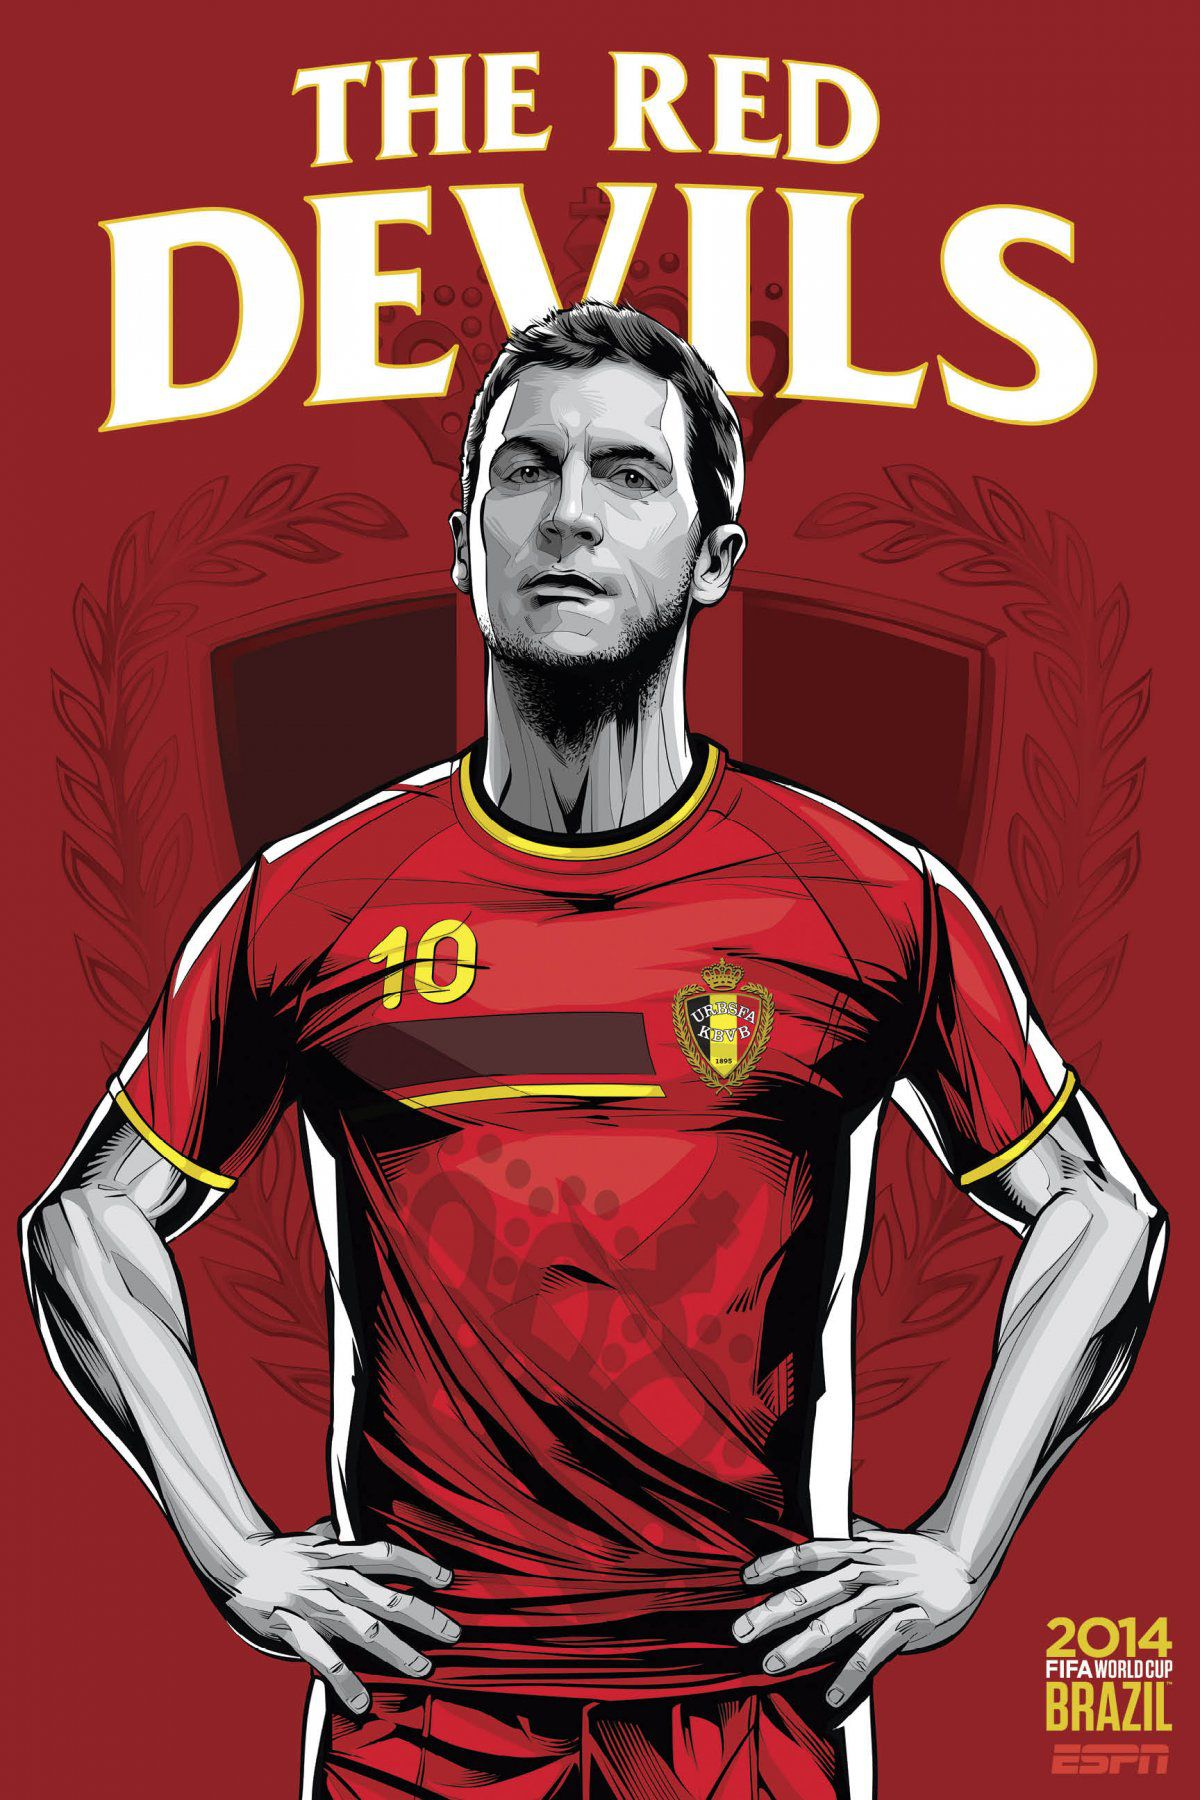 ESPN poster world cup brazil 2014 of Belgium